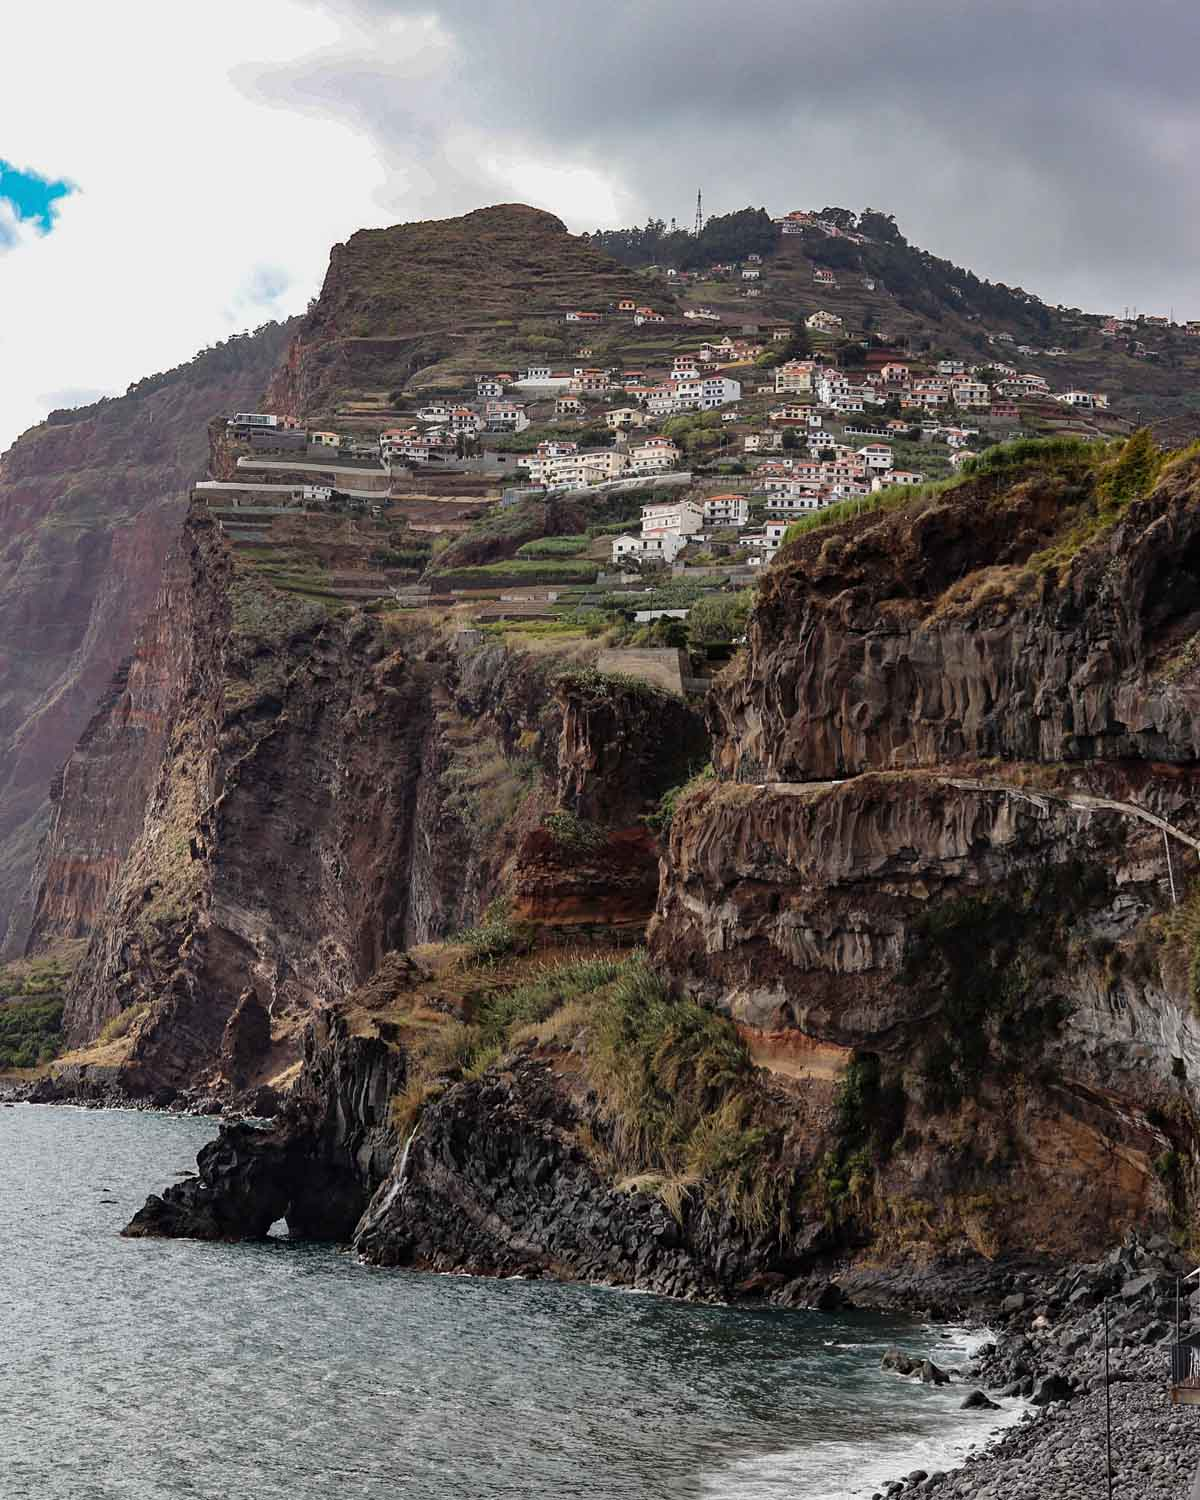 Mooiste bezienswaardigheden op Madeira [roadtrip route], Camara de Lobos  - Map of Joy